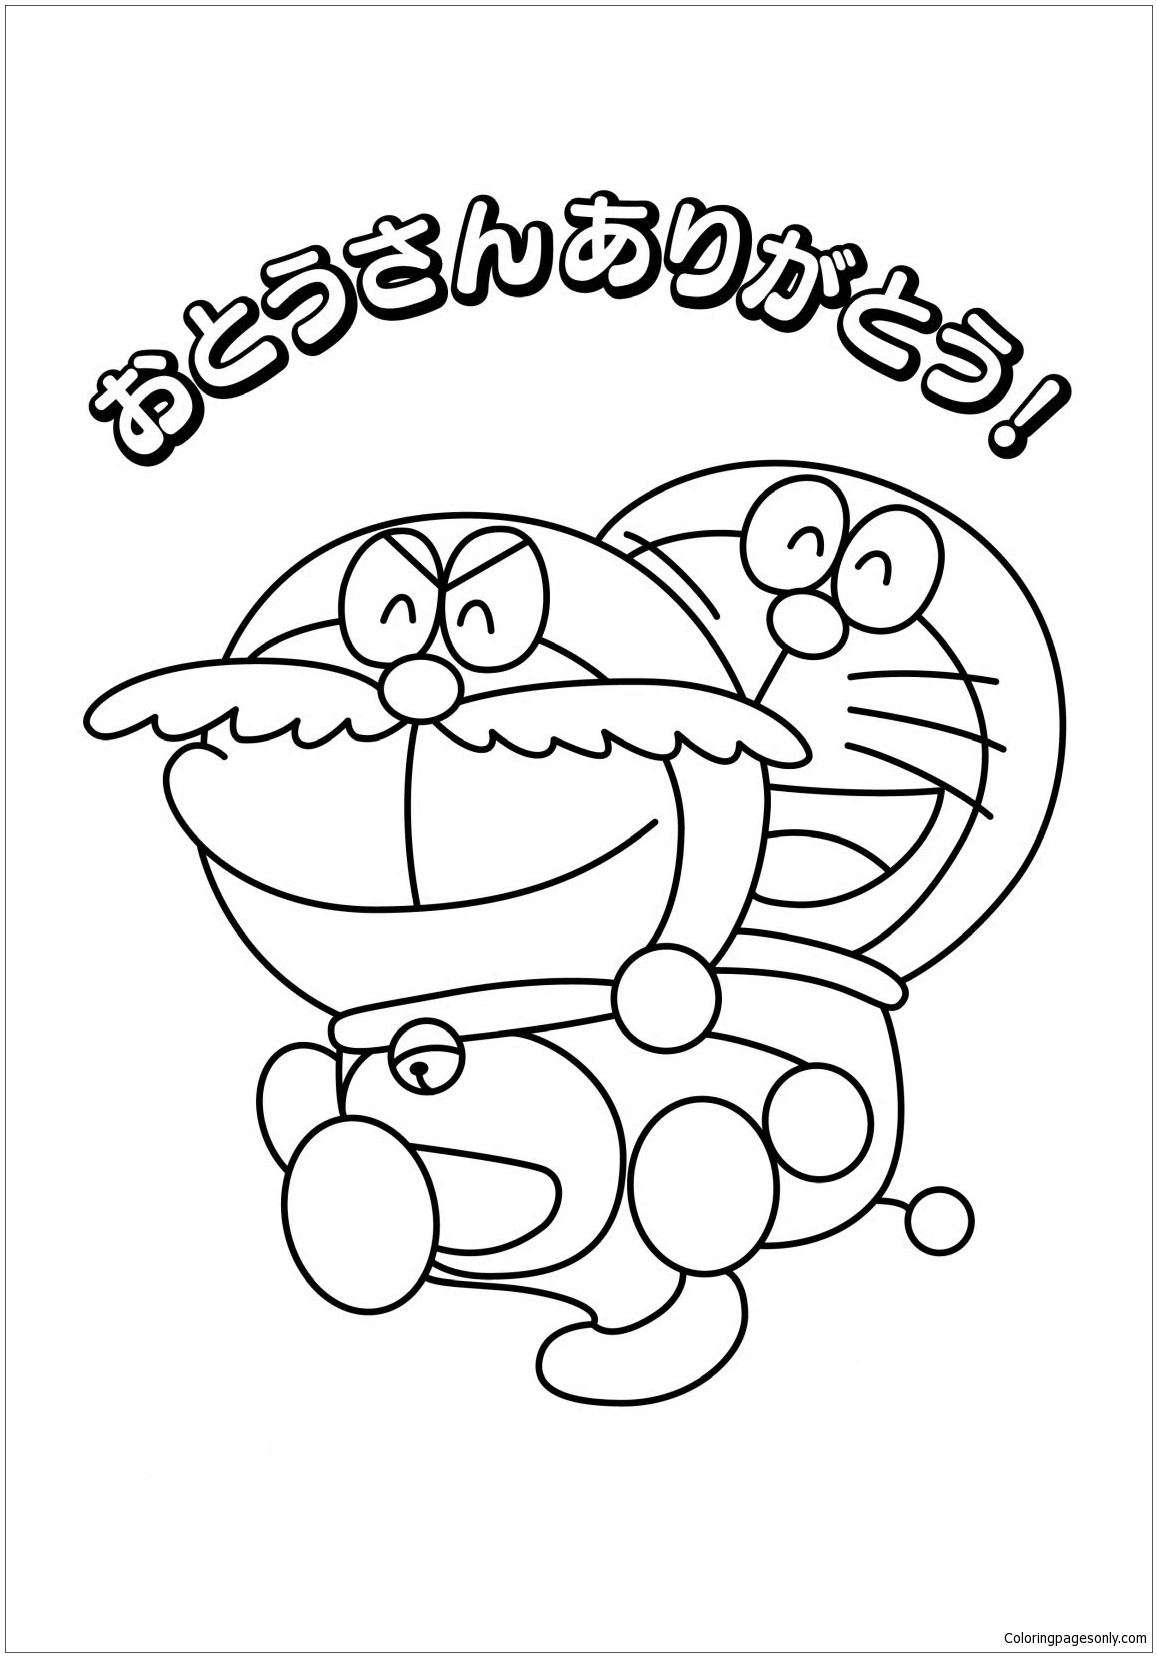 1157x1657 Doraemon With Mustache Coloring Page